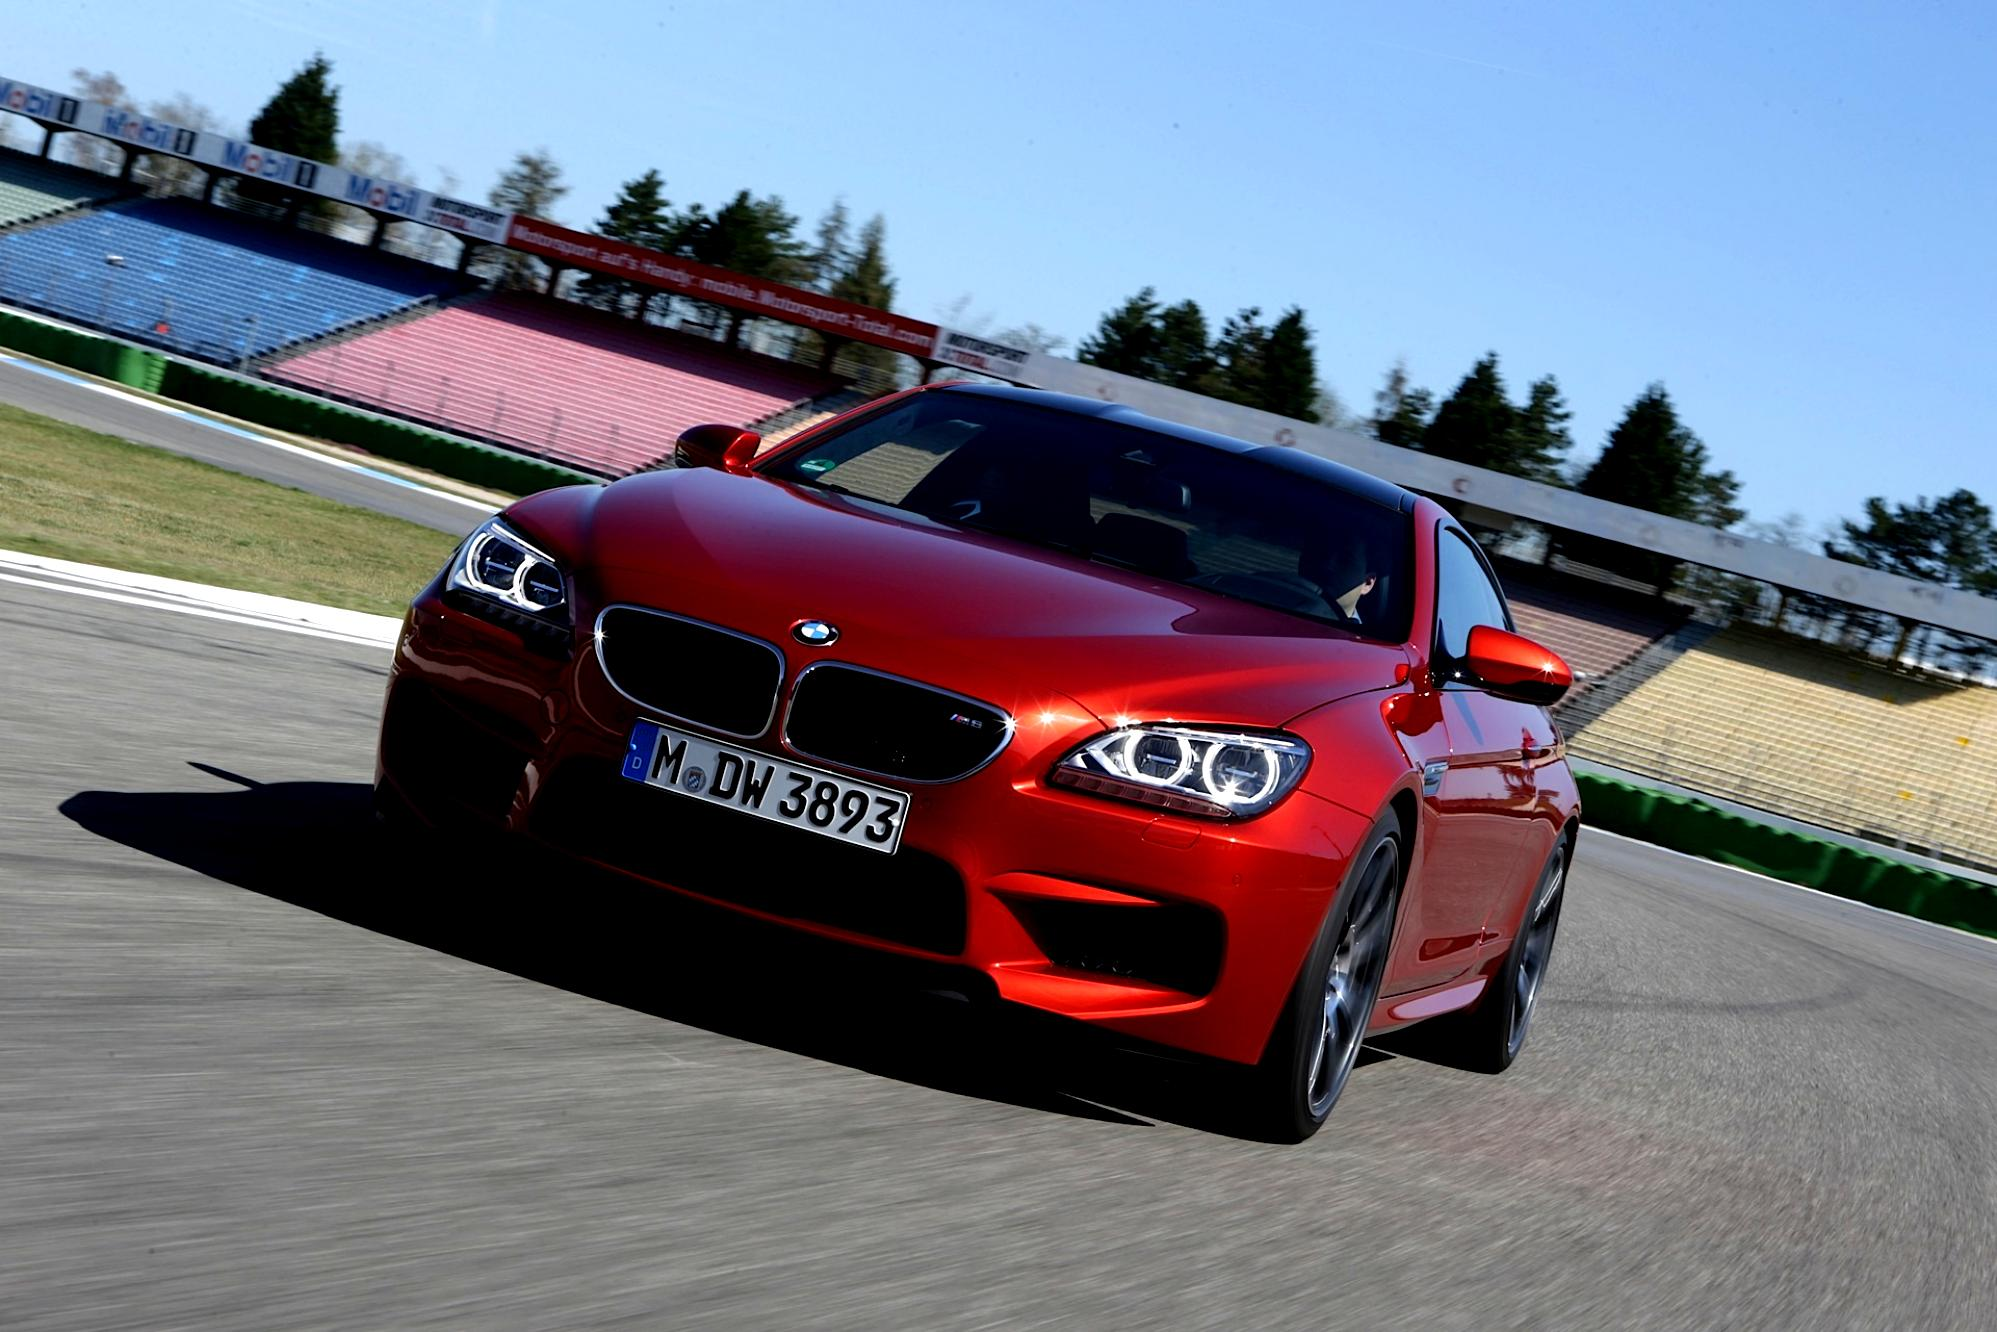 BMW M6 Coupe F13 2012 #115